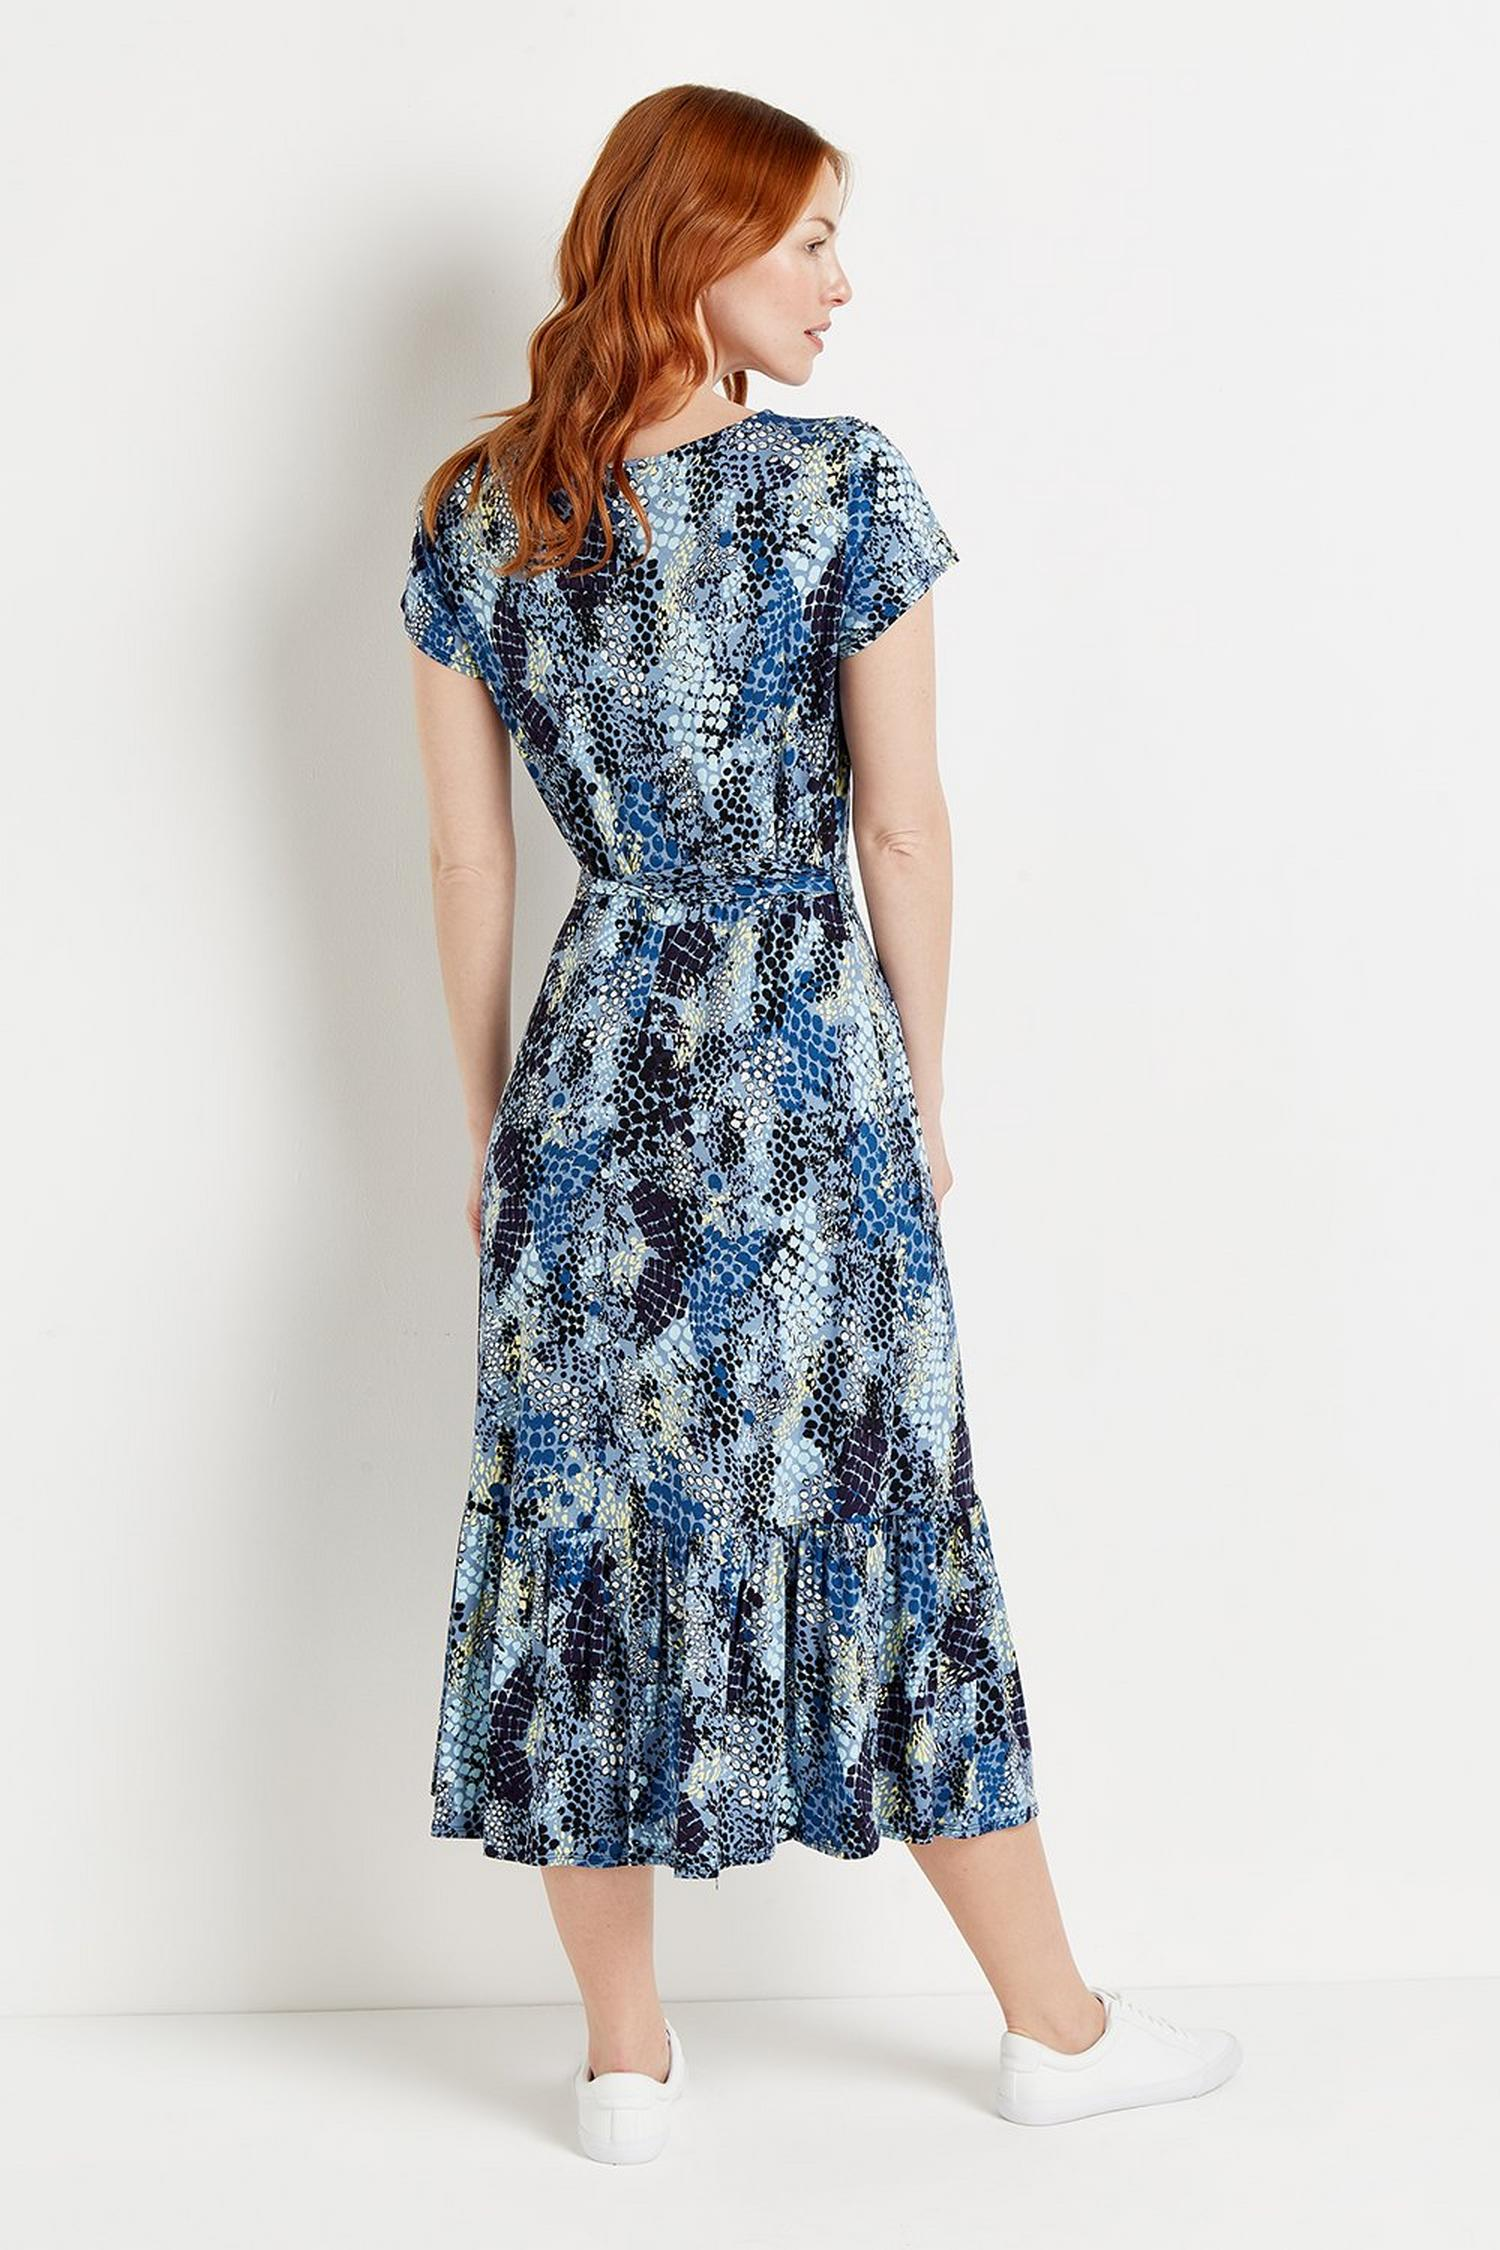 106 Blue Snake Print Tiered Jersey Midi Dress  image number 3